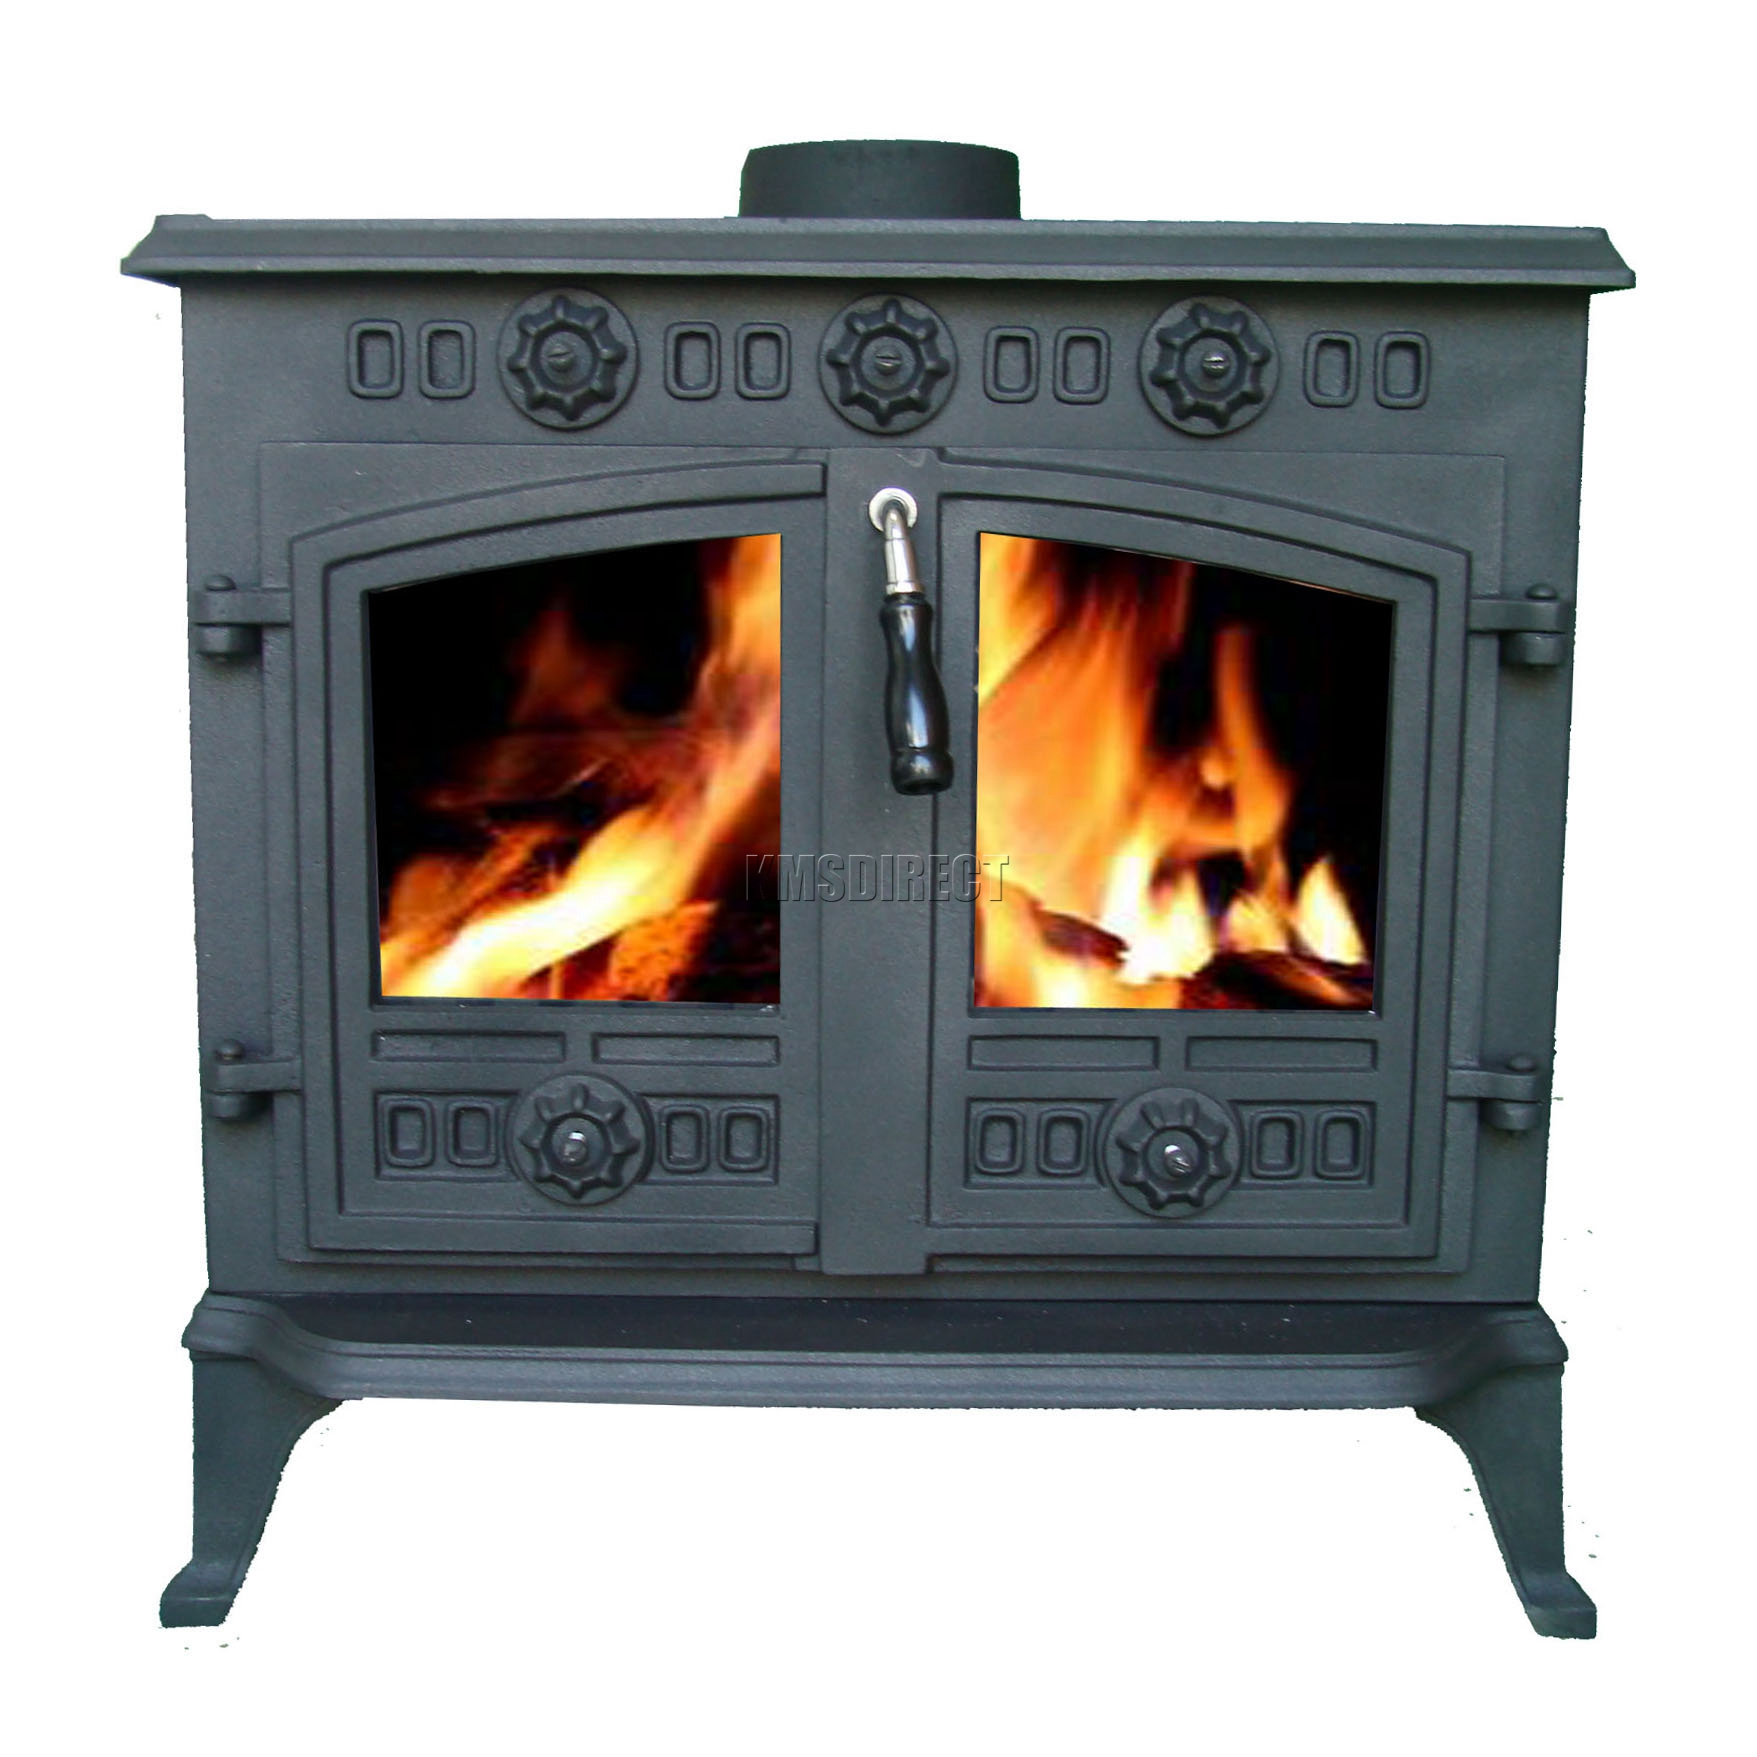 high efficiency wood burning fireplace. Sentinel 12KW JA006 High Efficient Cast Iron Log Burner Multifuel Woodburning Stove New Efficiency Wood Burning Fireplace